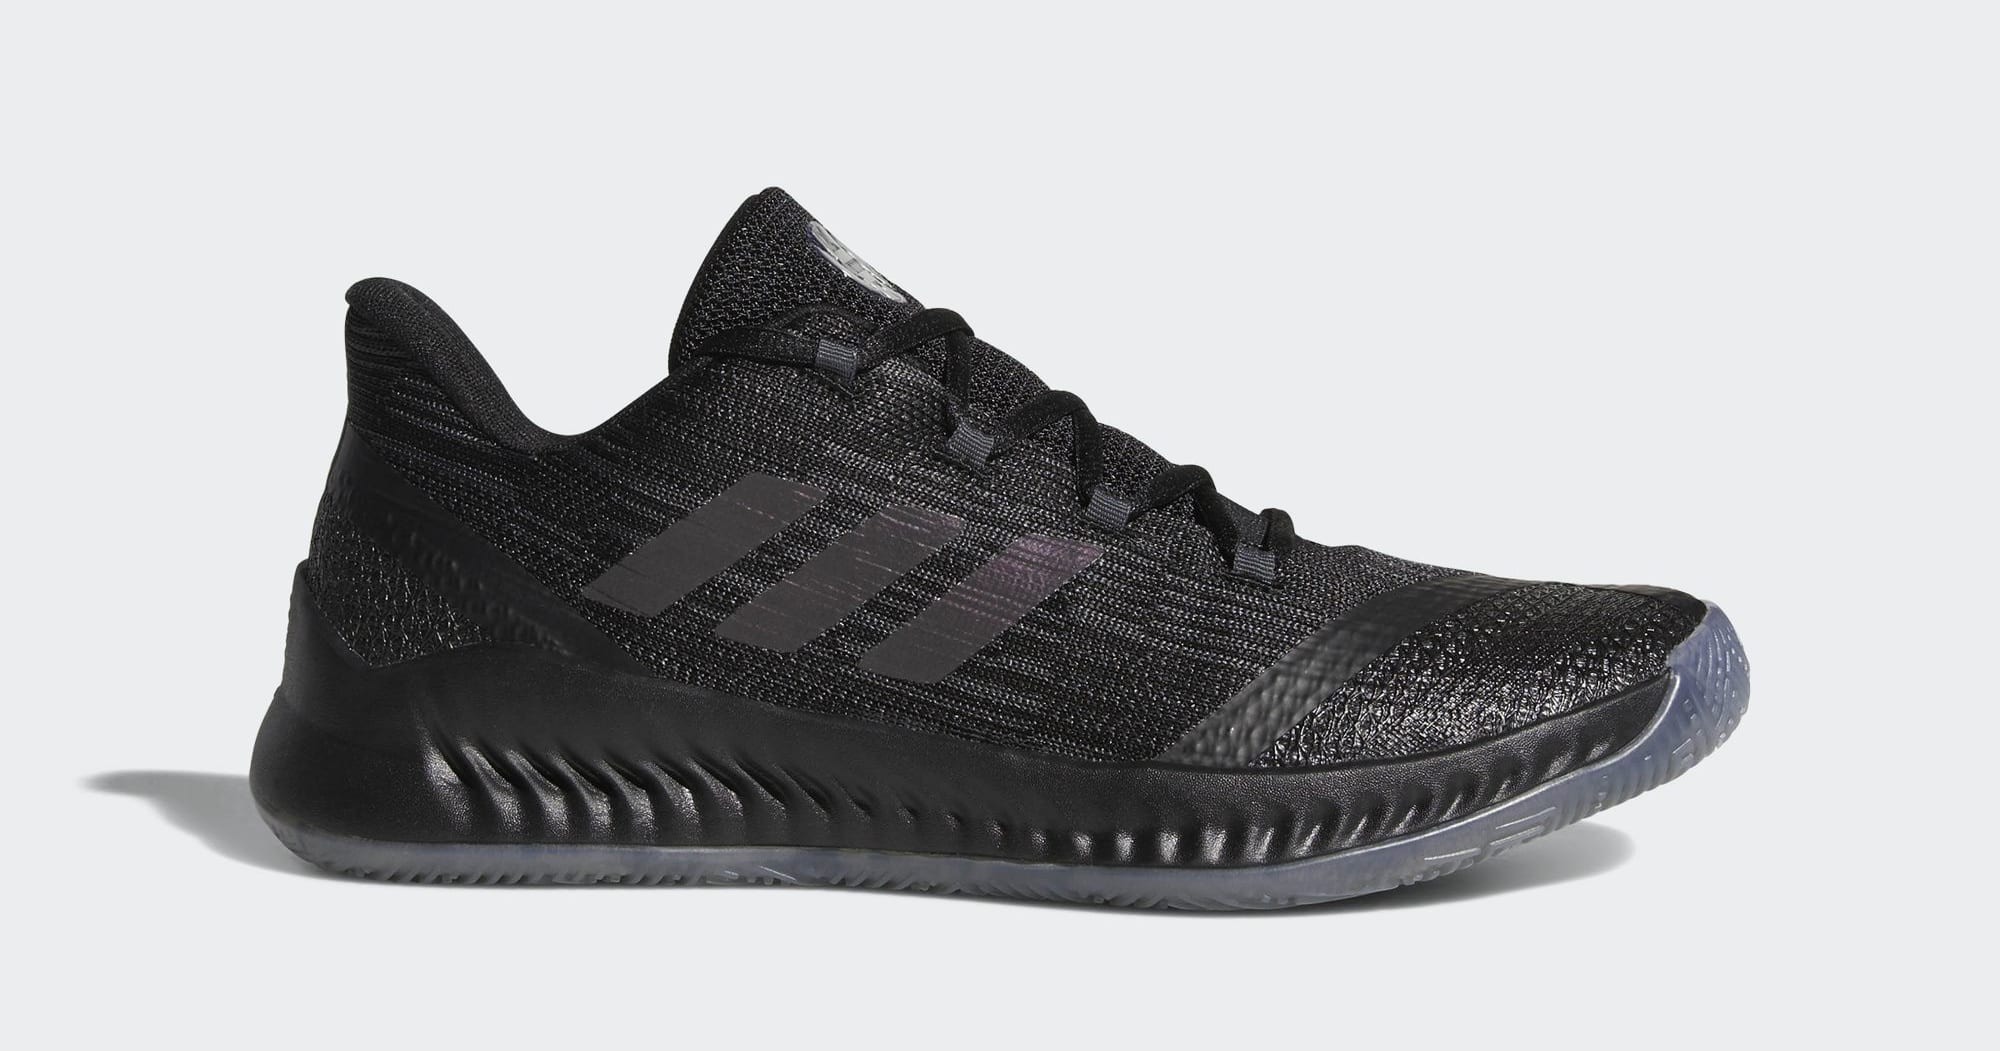 factory price 4a9d0 609d6 ebay image via us11 adidas harden b e 2 black lateral d2f38 a6446